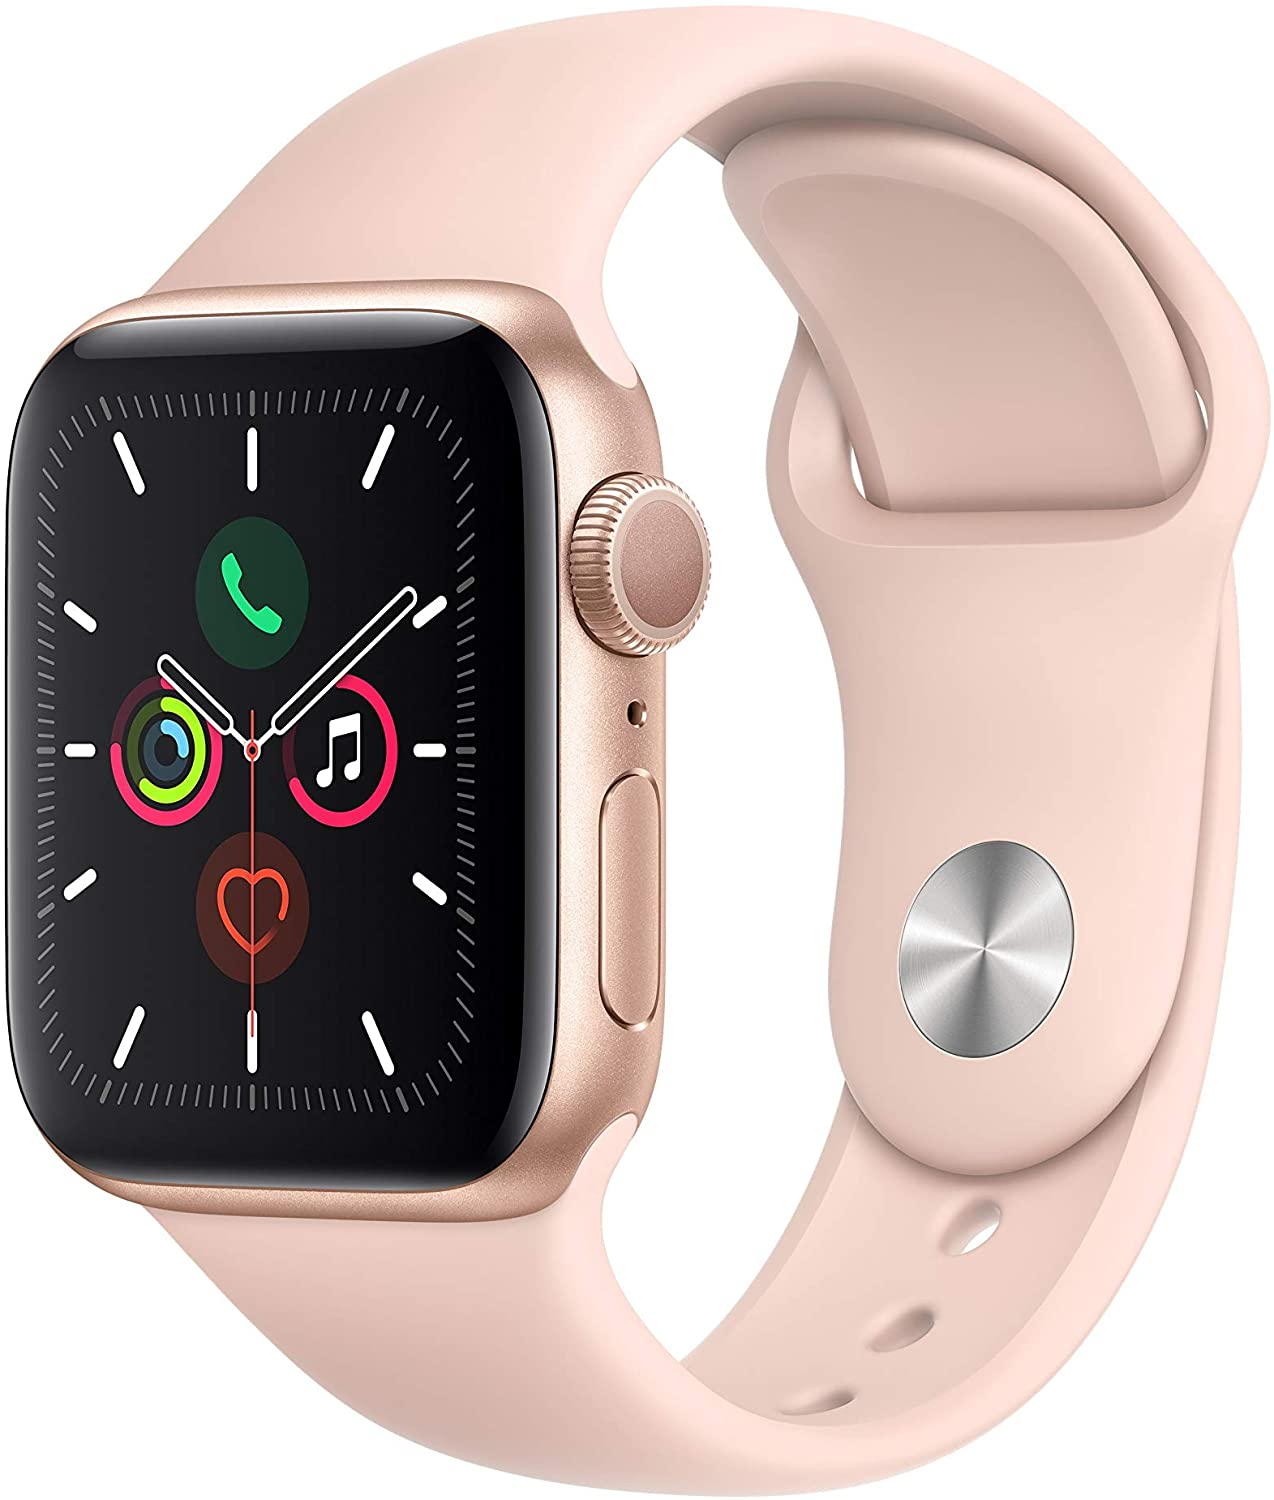 Best Apple Watch Deals of Black Friday [year]- $90 Price cut 1